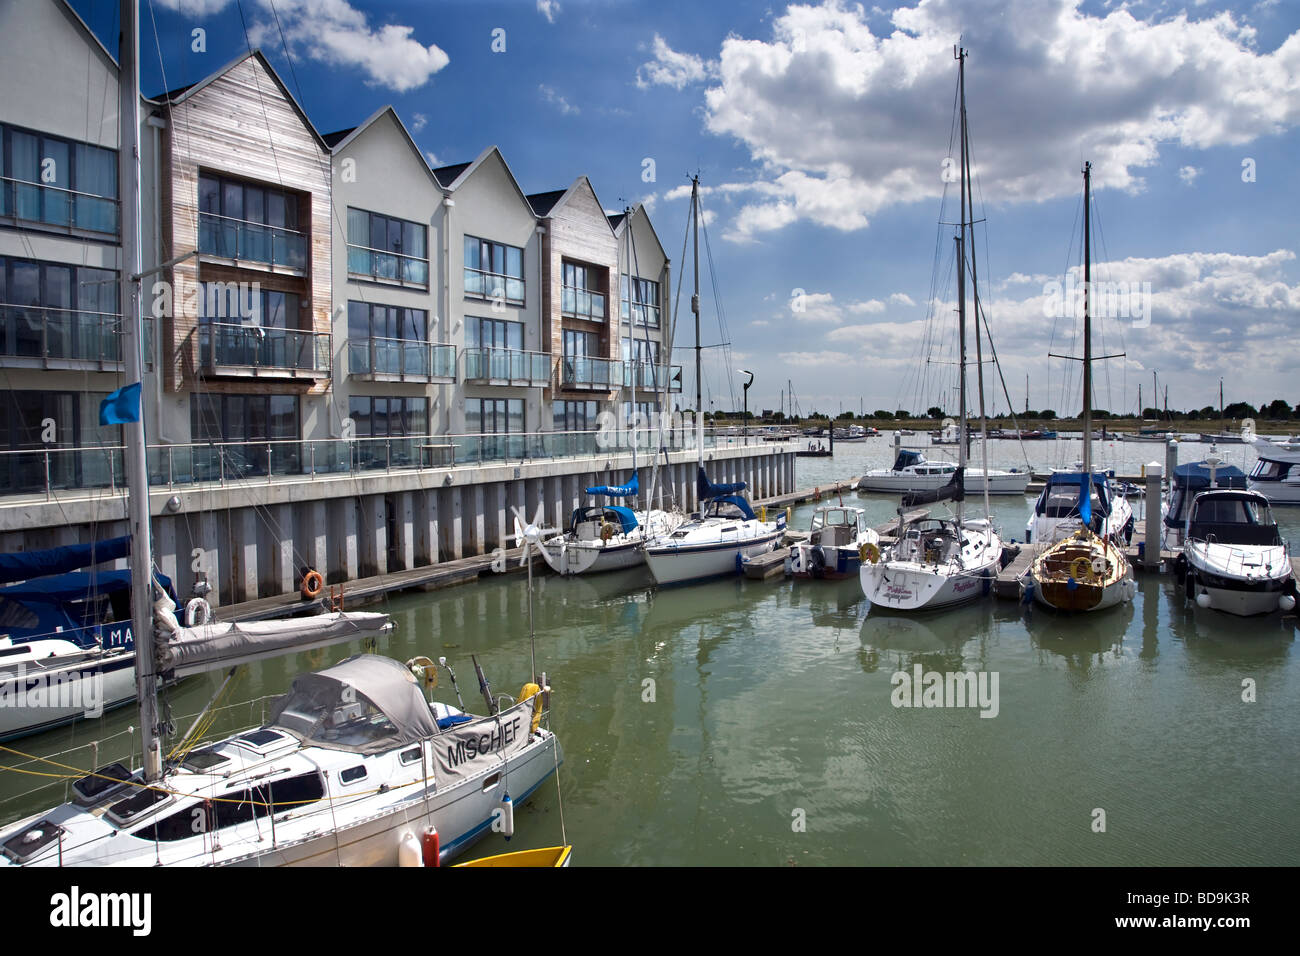 Wonderful BOATS MOORED AT THE NEW WATERSIDE MARINA APARTMENTS AT BRIGHTLINGSEA NEAR  COLCHESTER, A SMALL POPULAR SEASIDE TOWN.